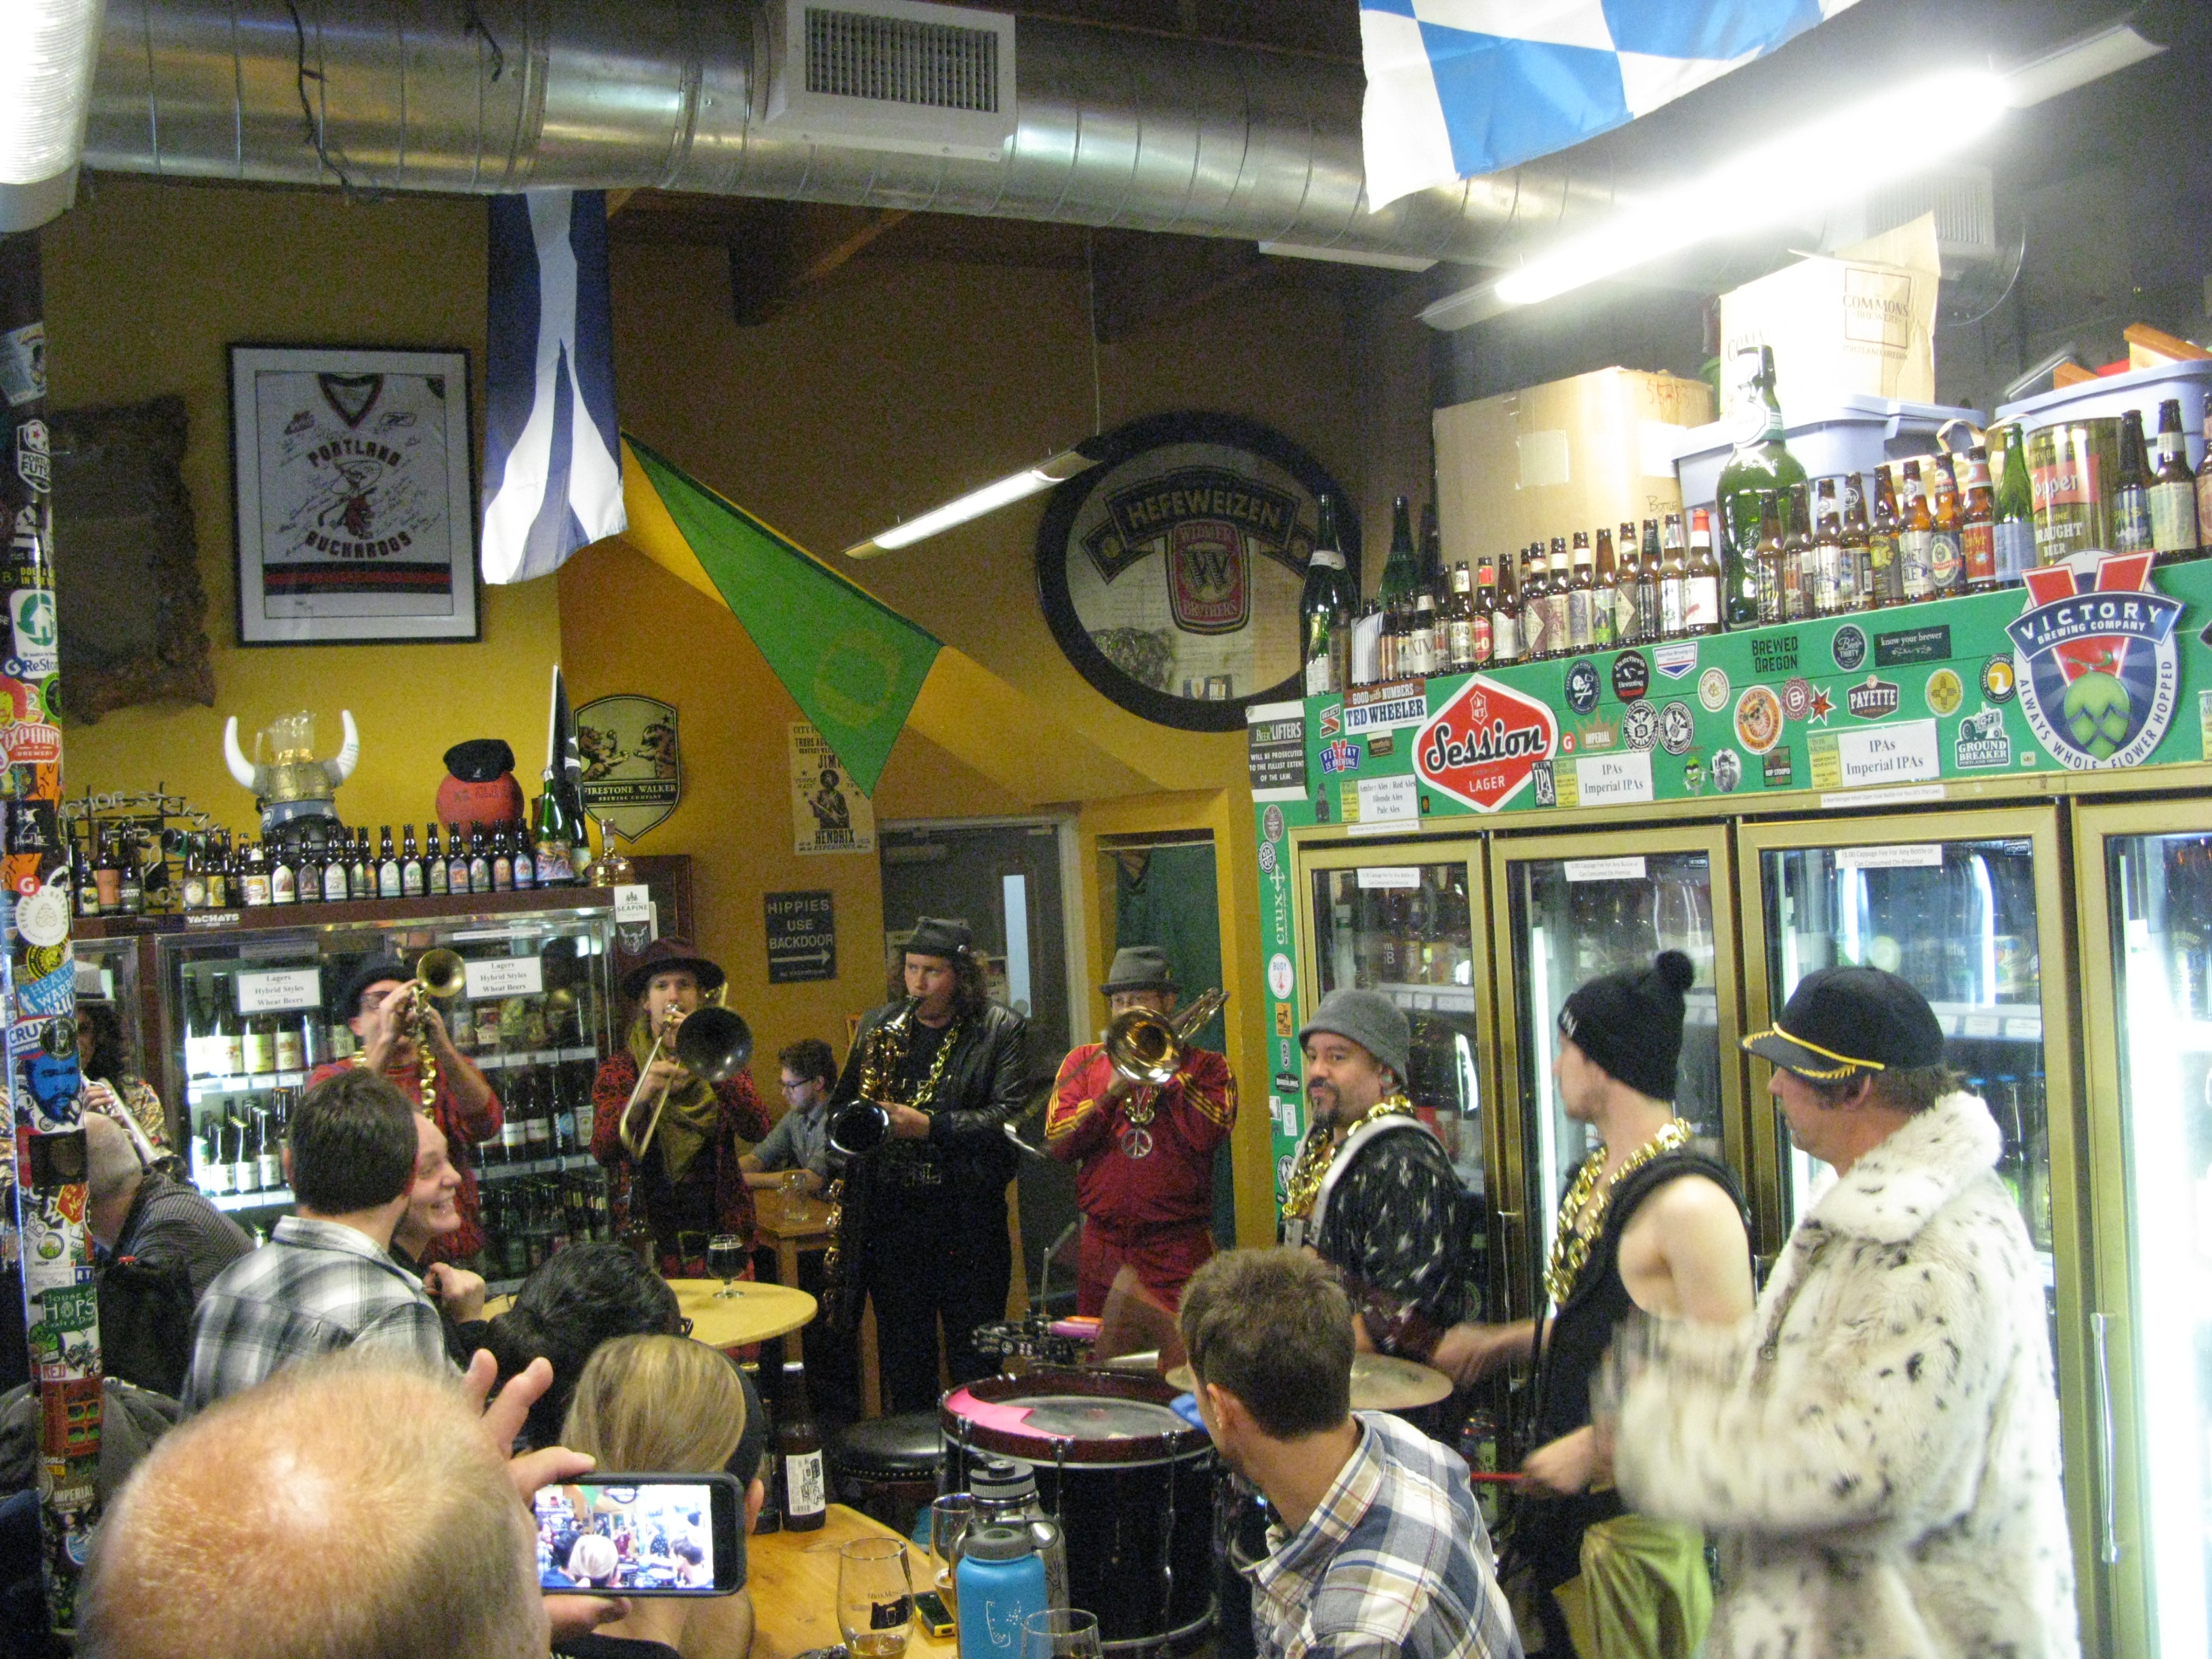 Brass to Mouth Street Band featuring member of MarchFourth Marching Band take over The BeerMongers. (FoystonFoto)